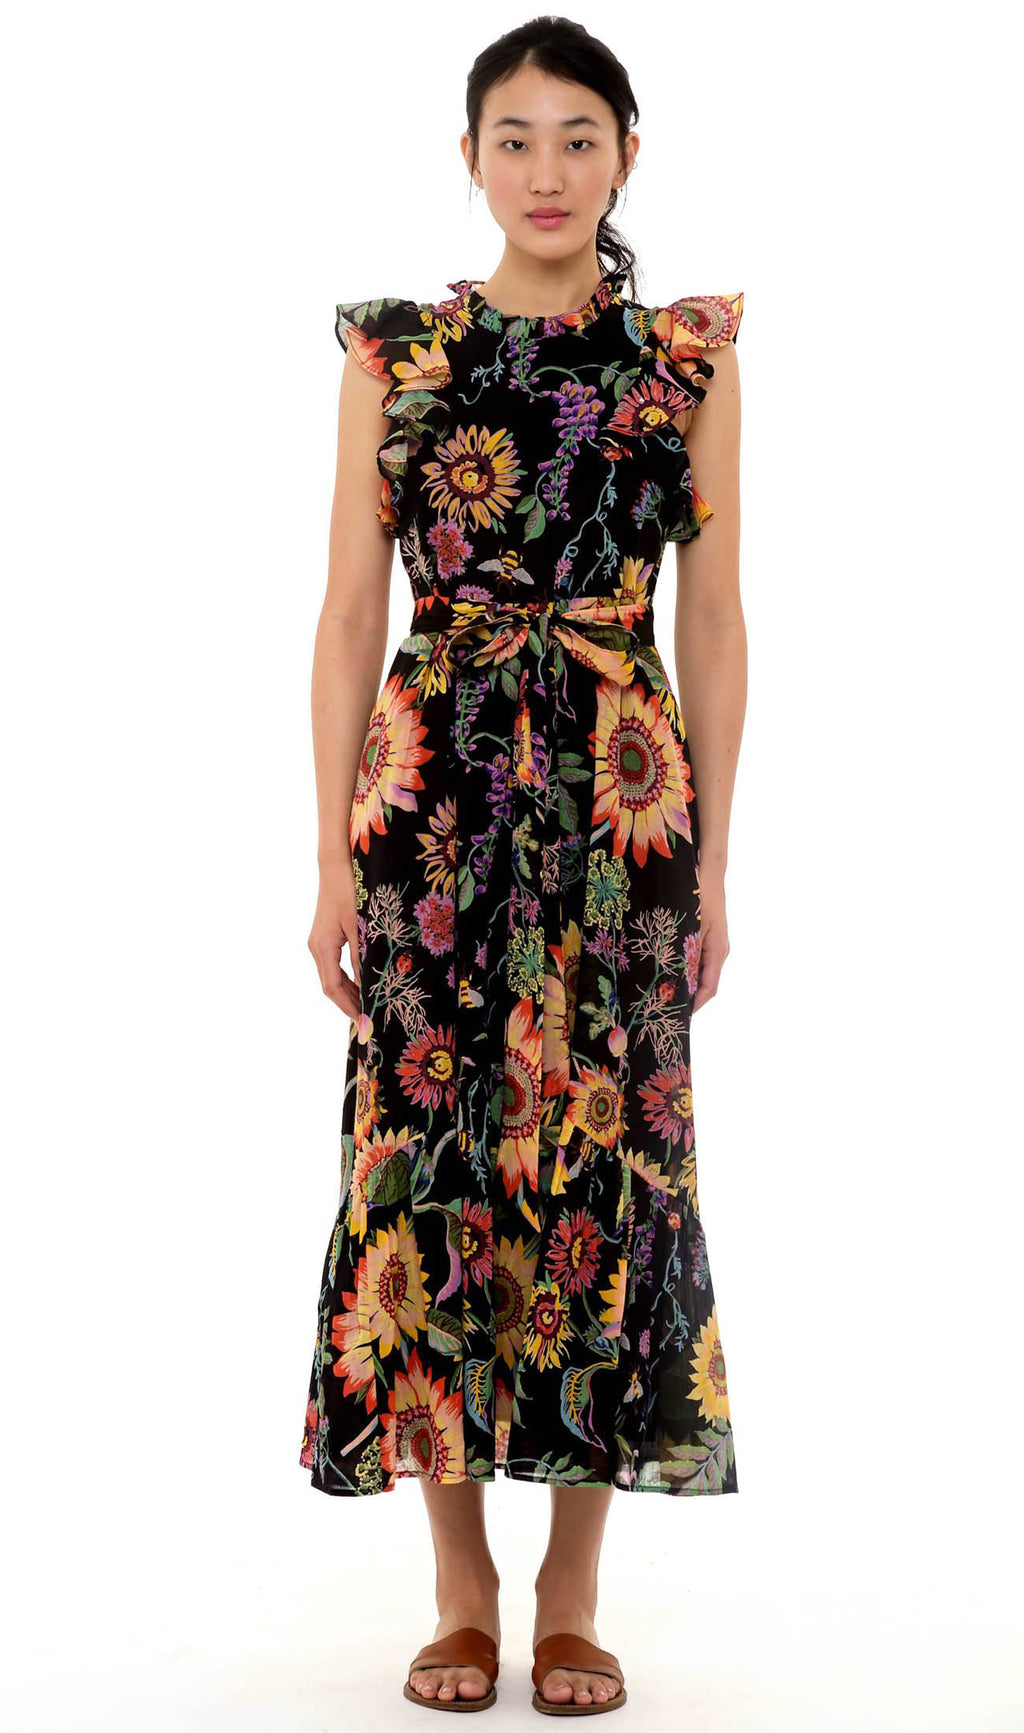 Banjanan Hanna Dress Midsummer Bumble Black